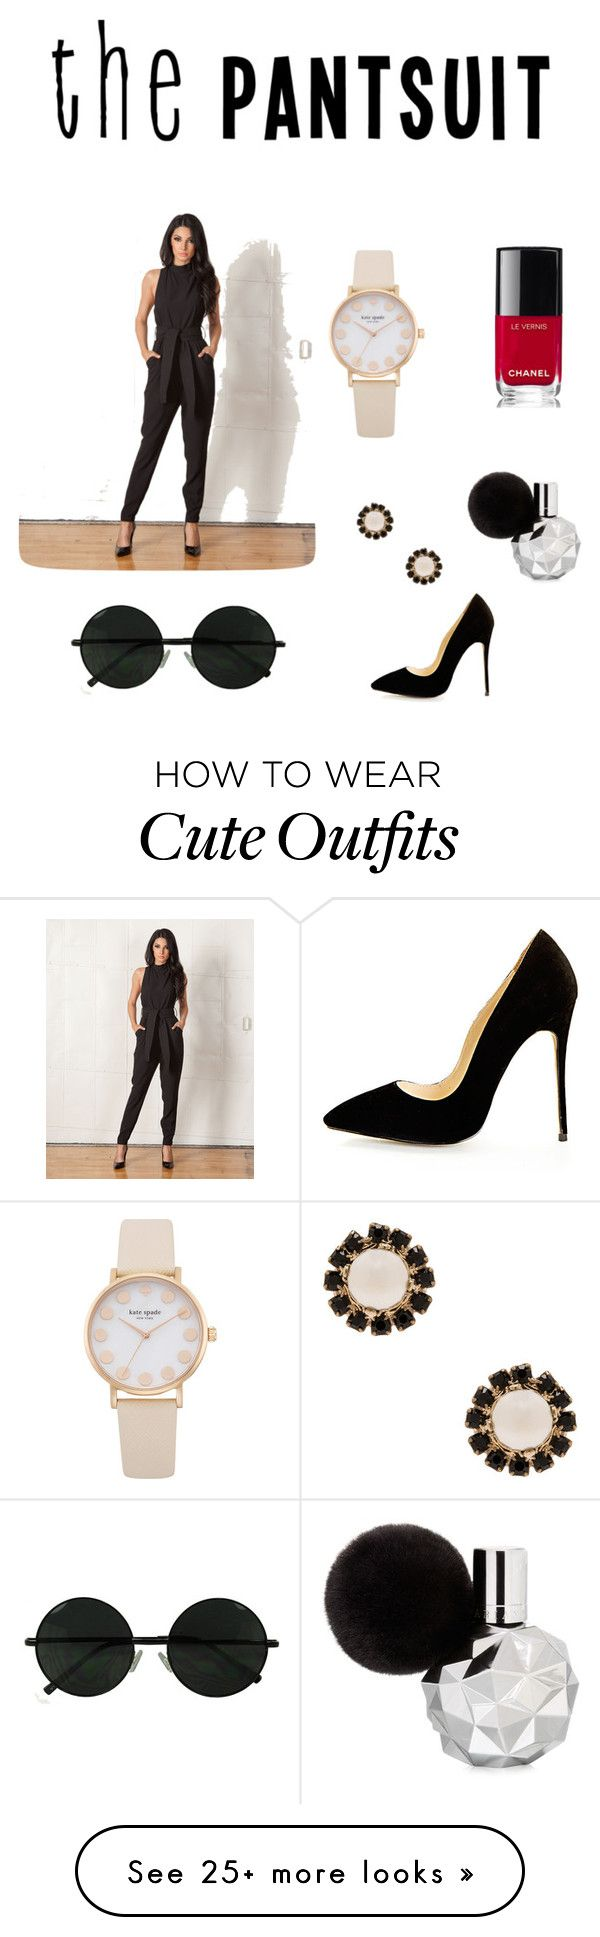 """CUTE PANTSUIT OUTFIT: nice date night outfit"" by omgitsmariahh on Polyvore featuring Cameo, Givenchy, Chanel and thepantsuit"